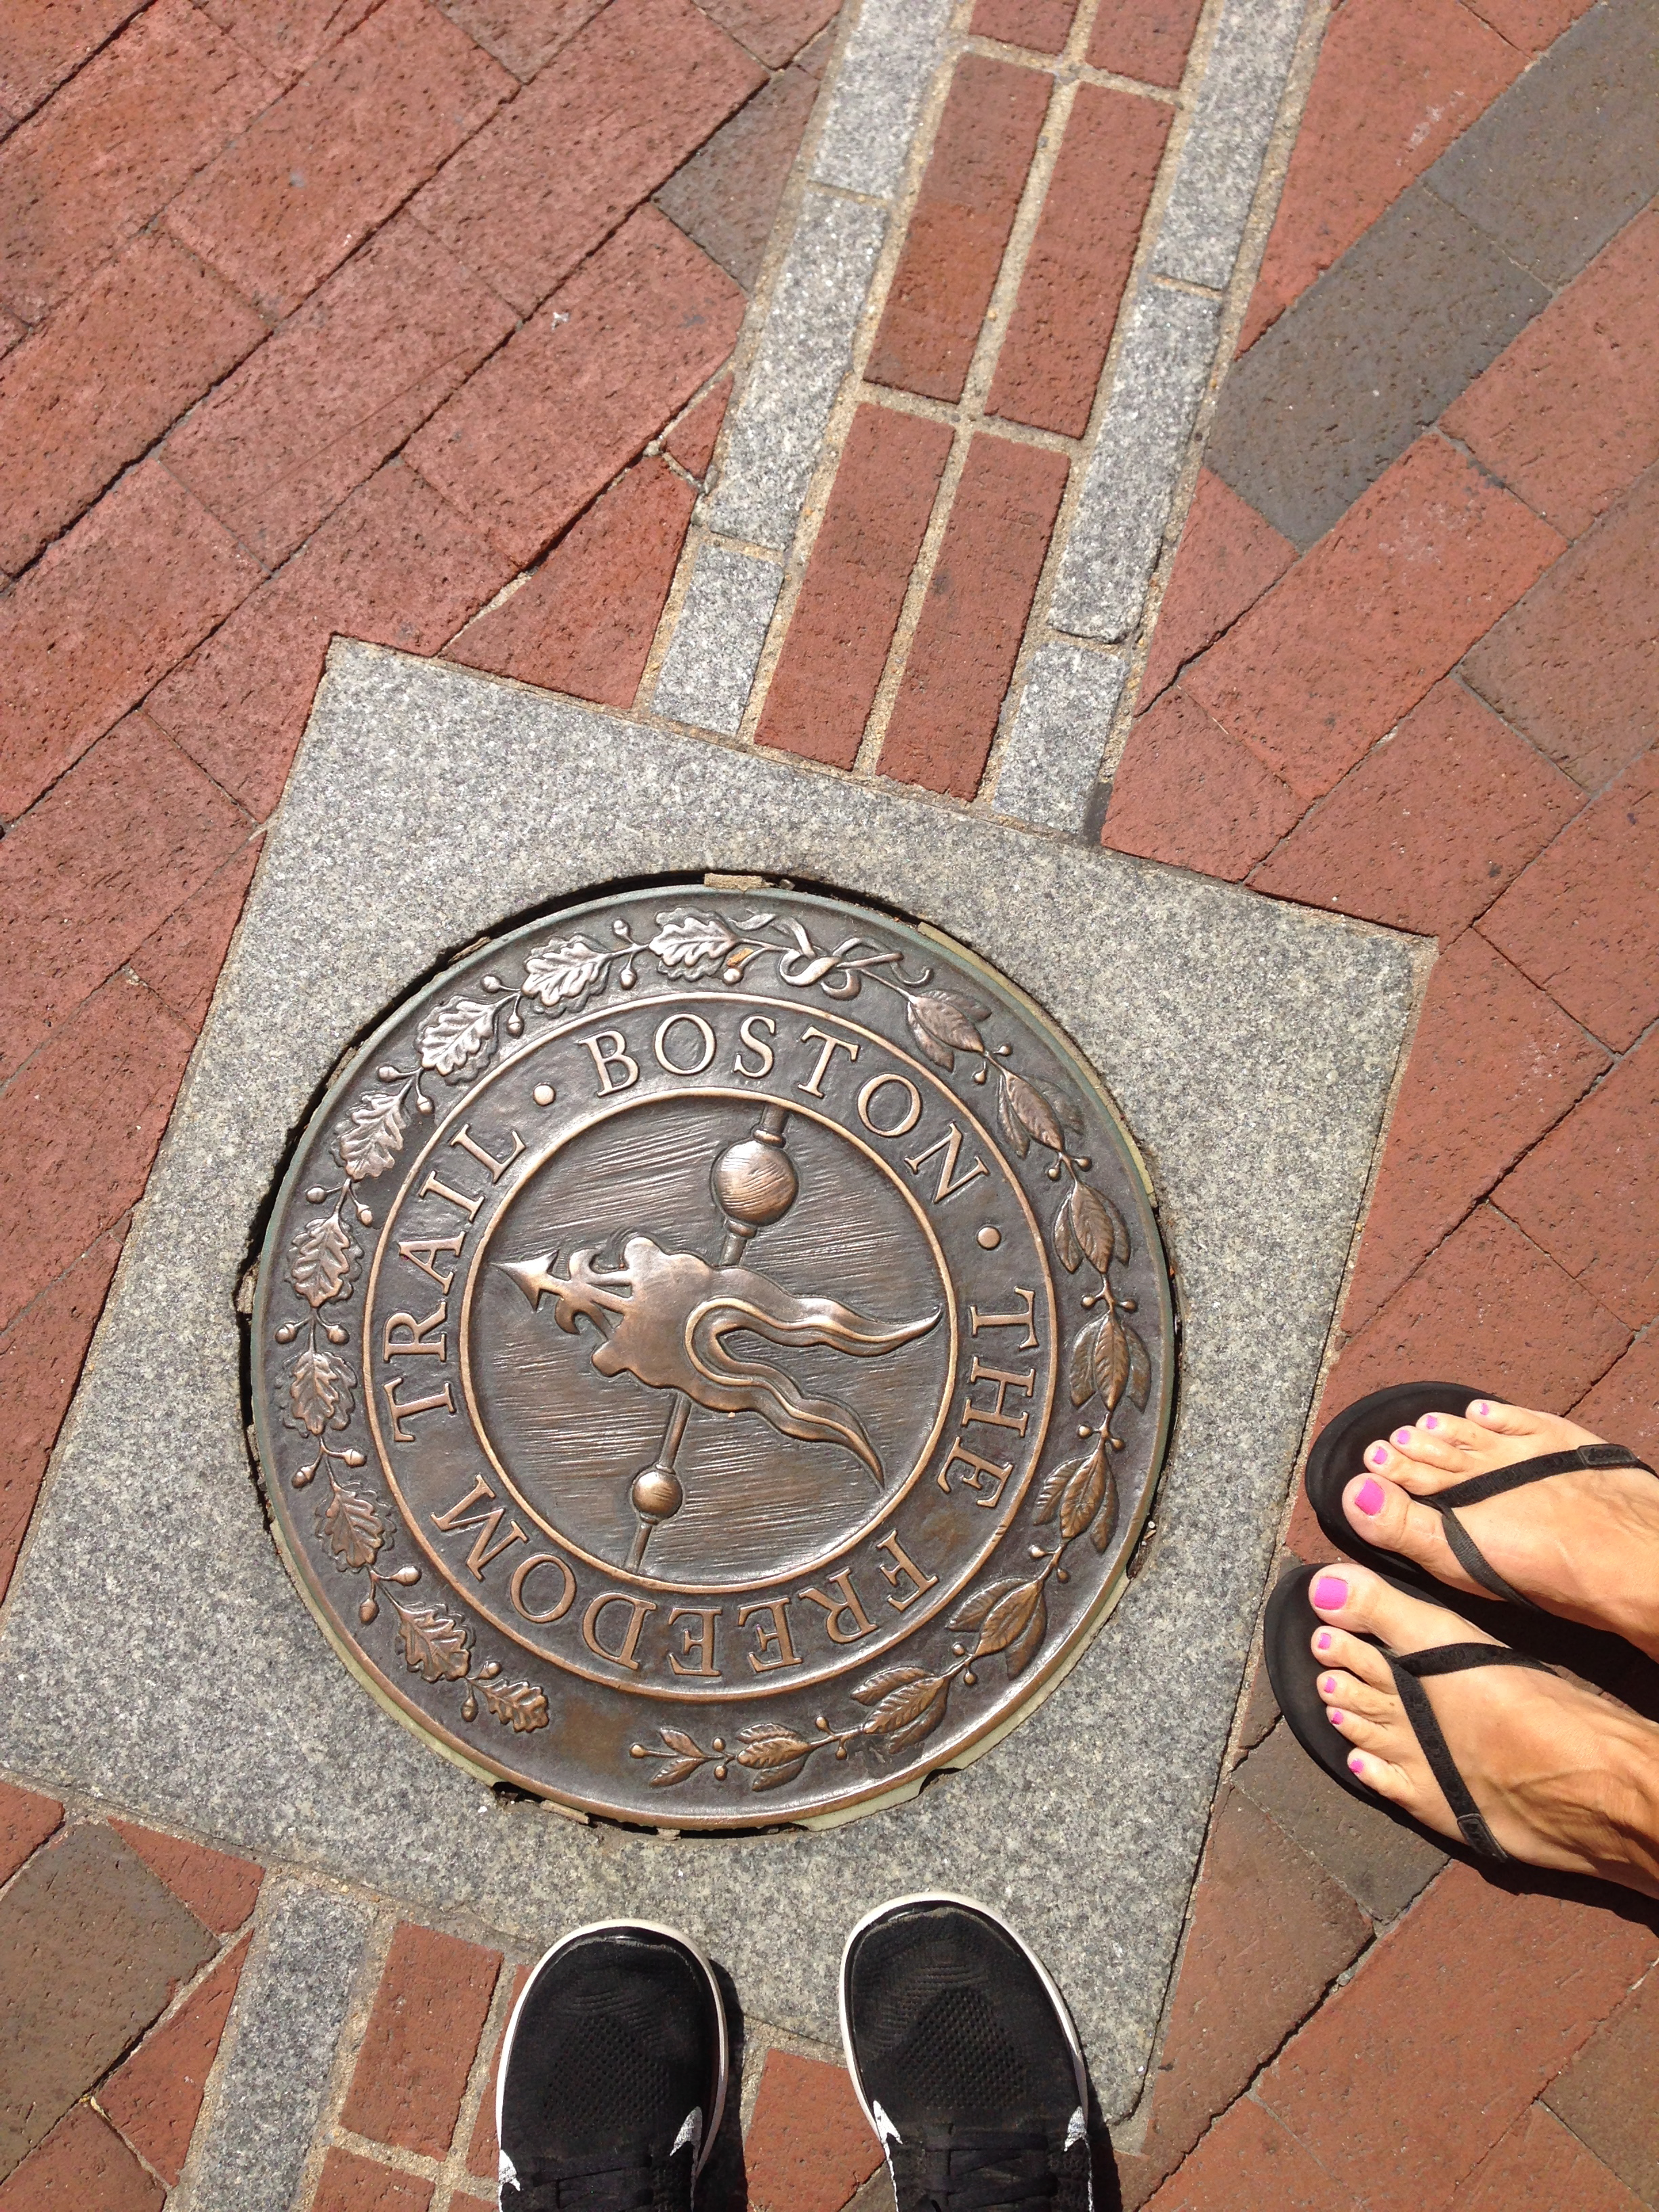 We even saw some historical sights. It's amazing how many bars are along the Freedom Trail!